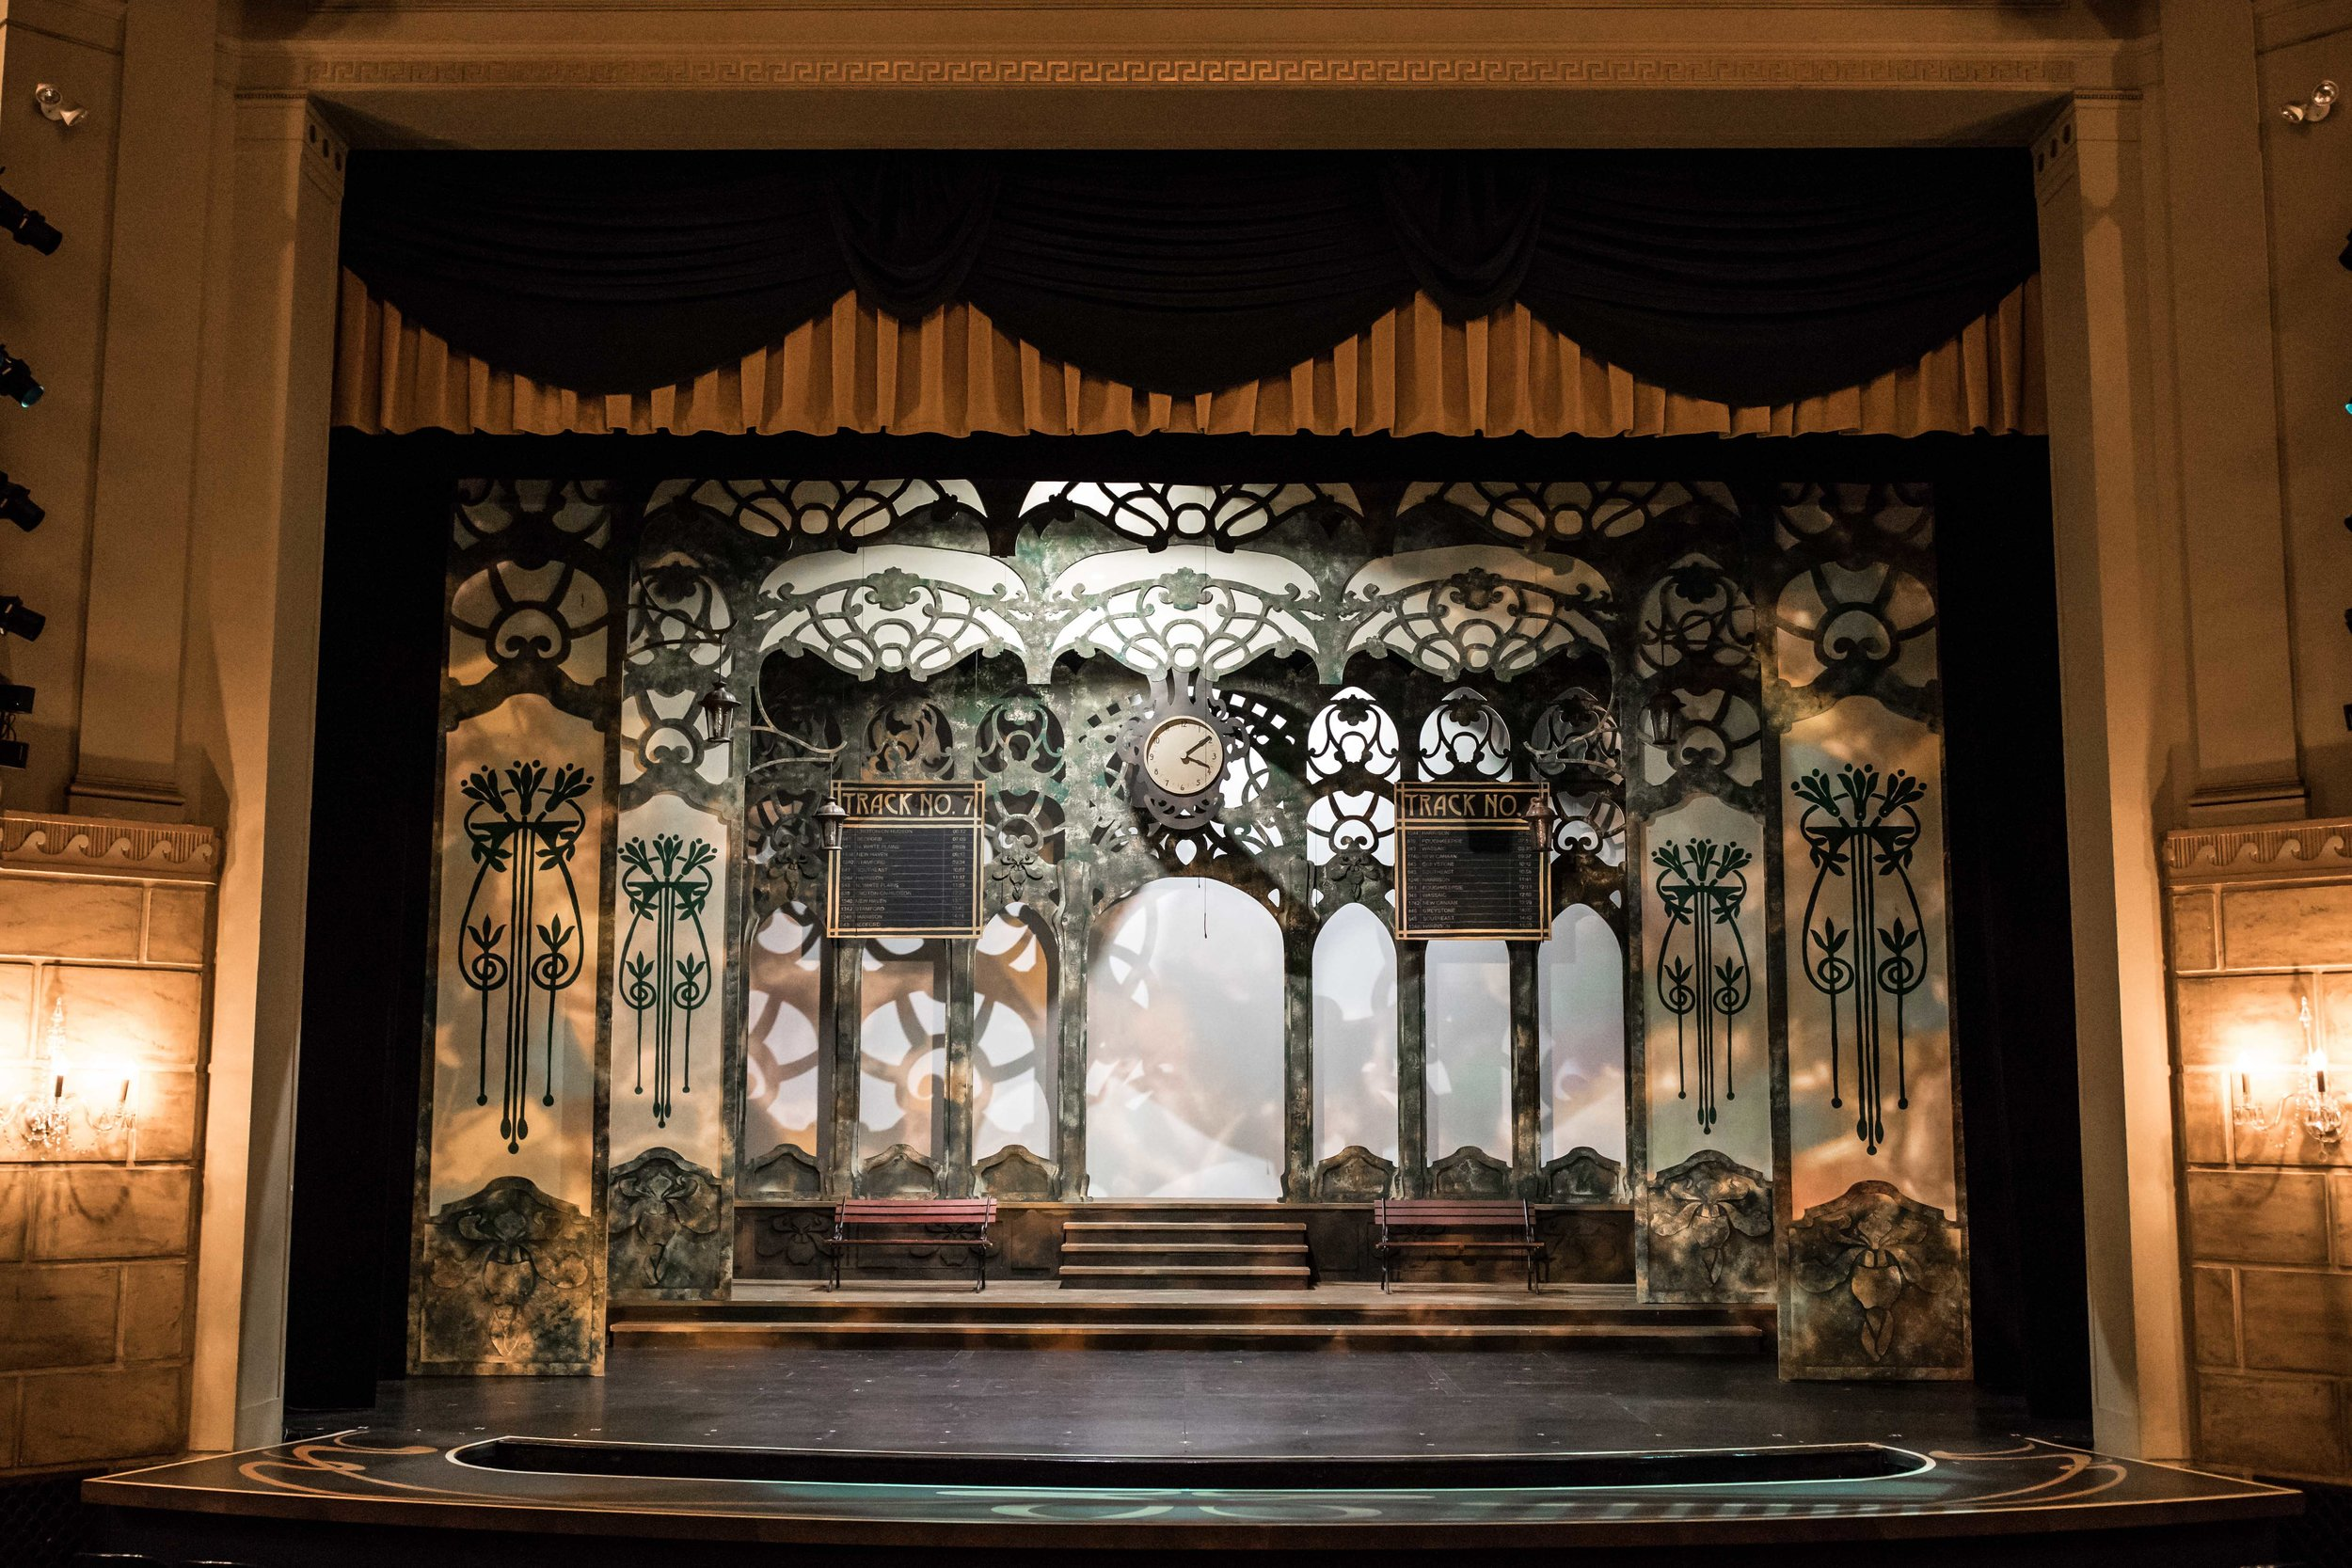 an amazing set built for Hello, Dolly! the musical at the Kalamazoo Civic Theatre